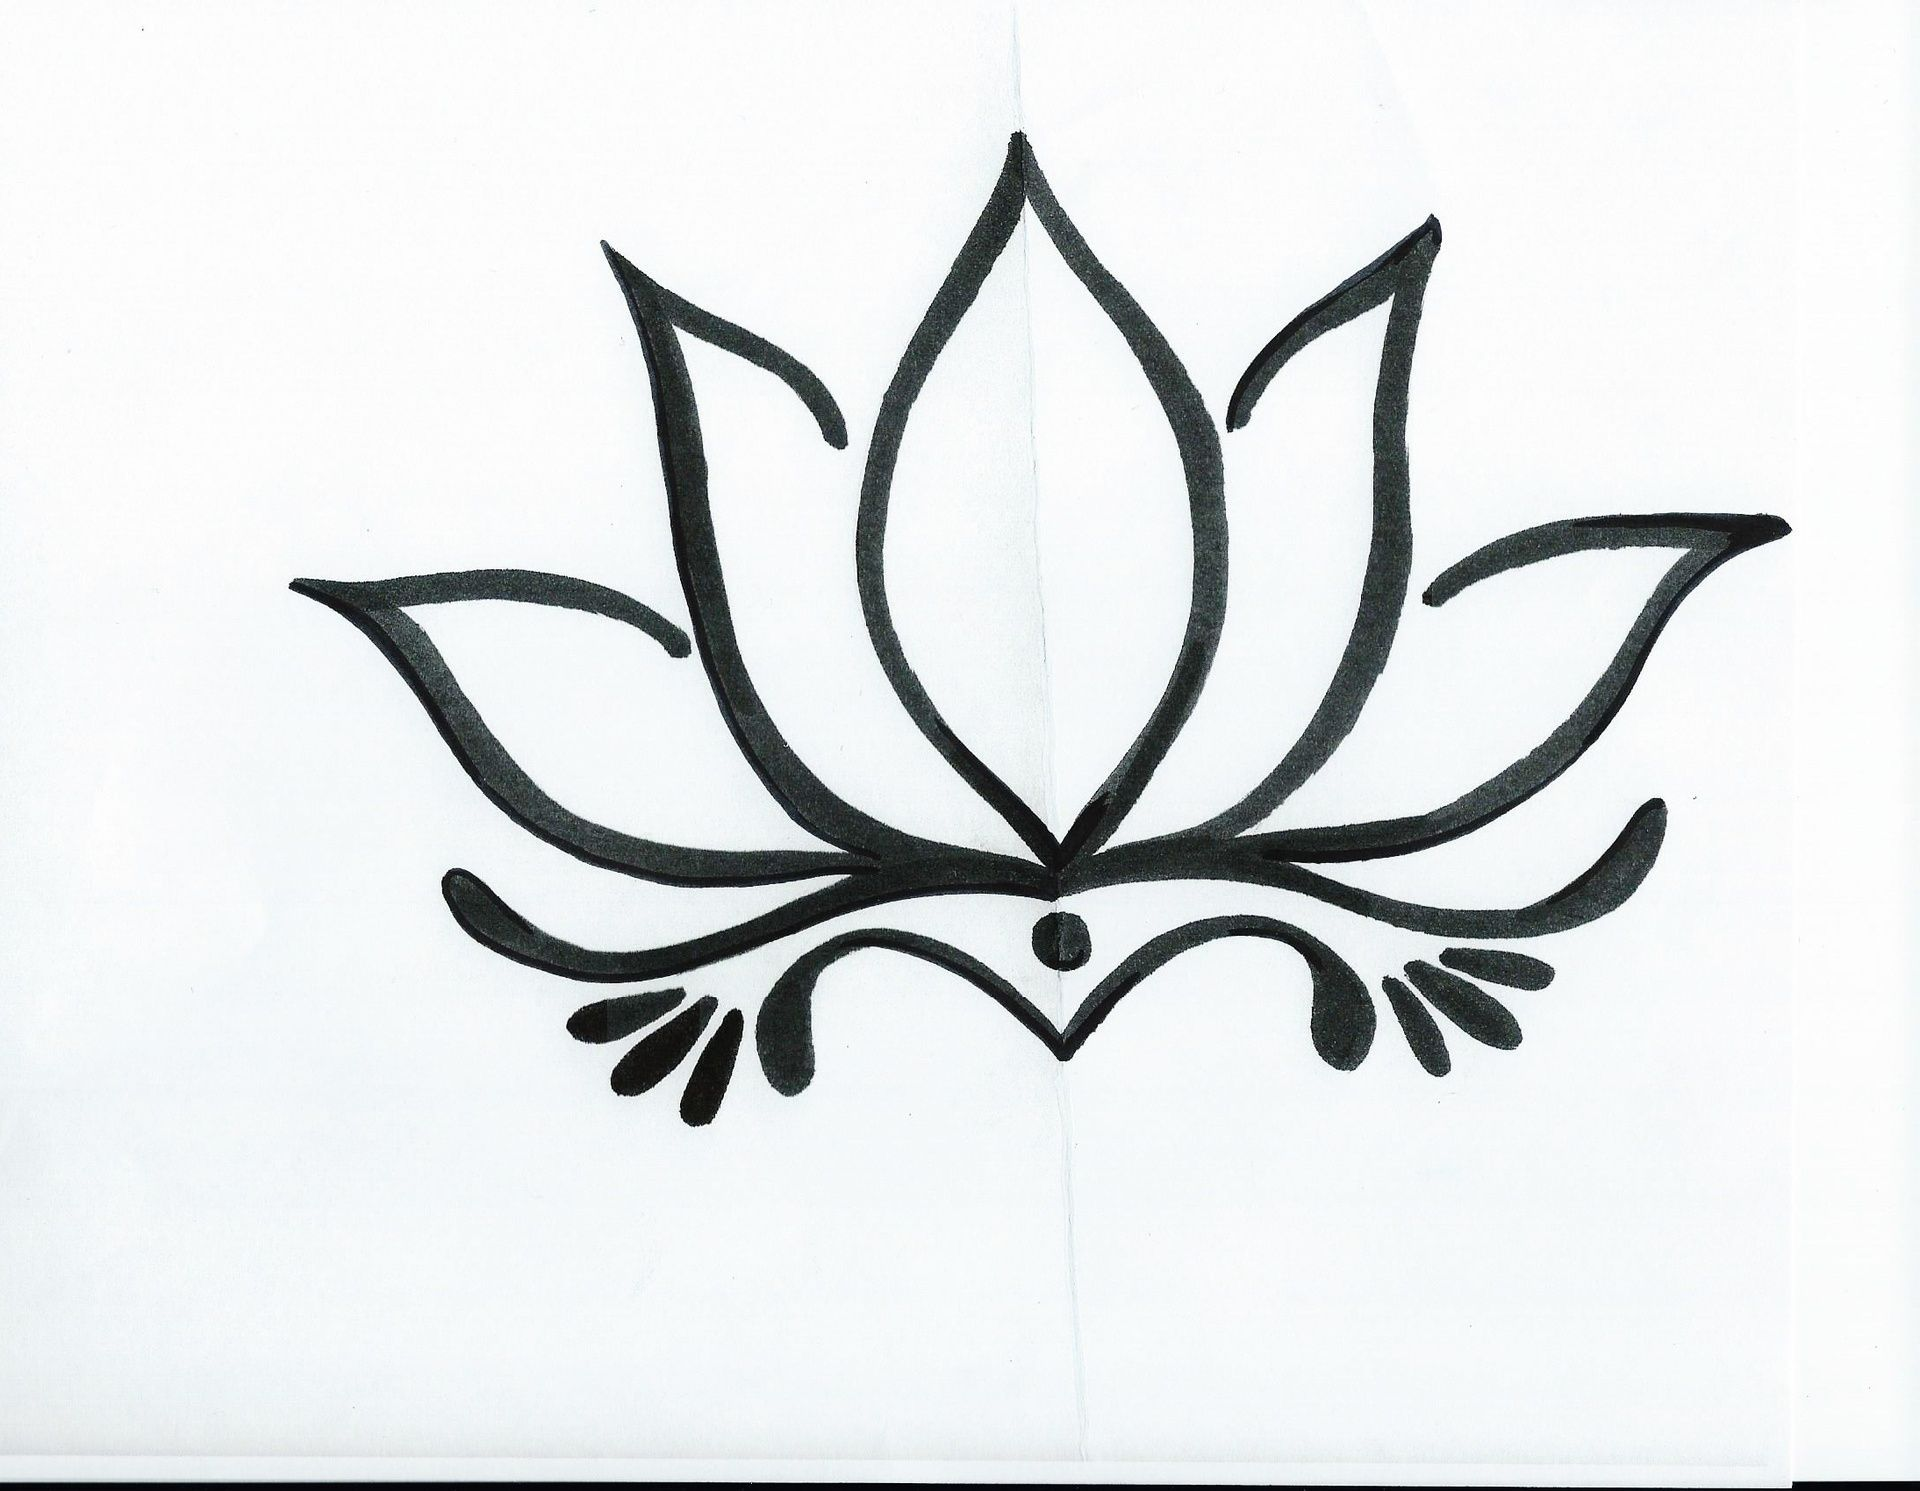 Simple Lotus Flower Drawing Ascending Lotus Tattoo Tattoos Ideas Inspirations Pint Simple Lotus Flower Tattoo Flower Drawing Design Simple Flower Drawing